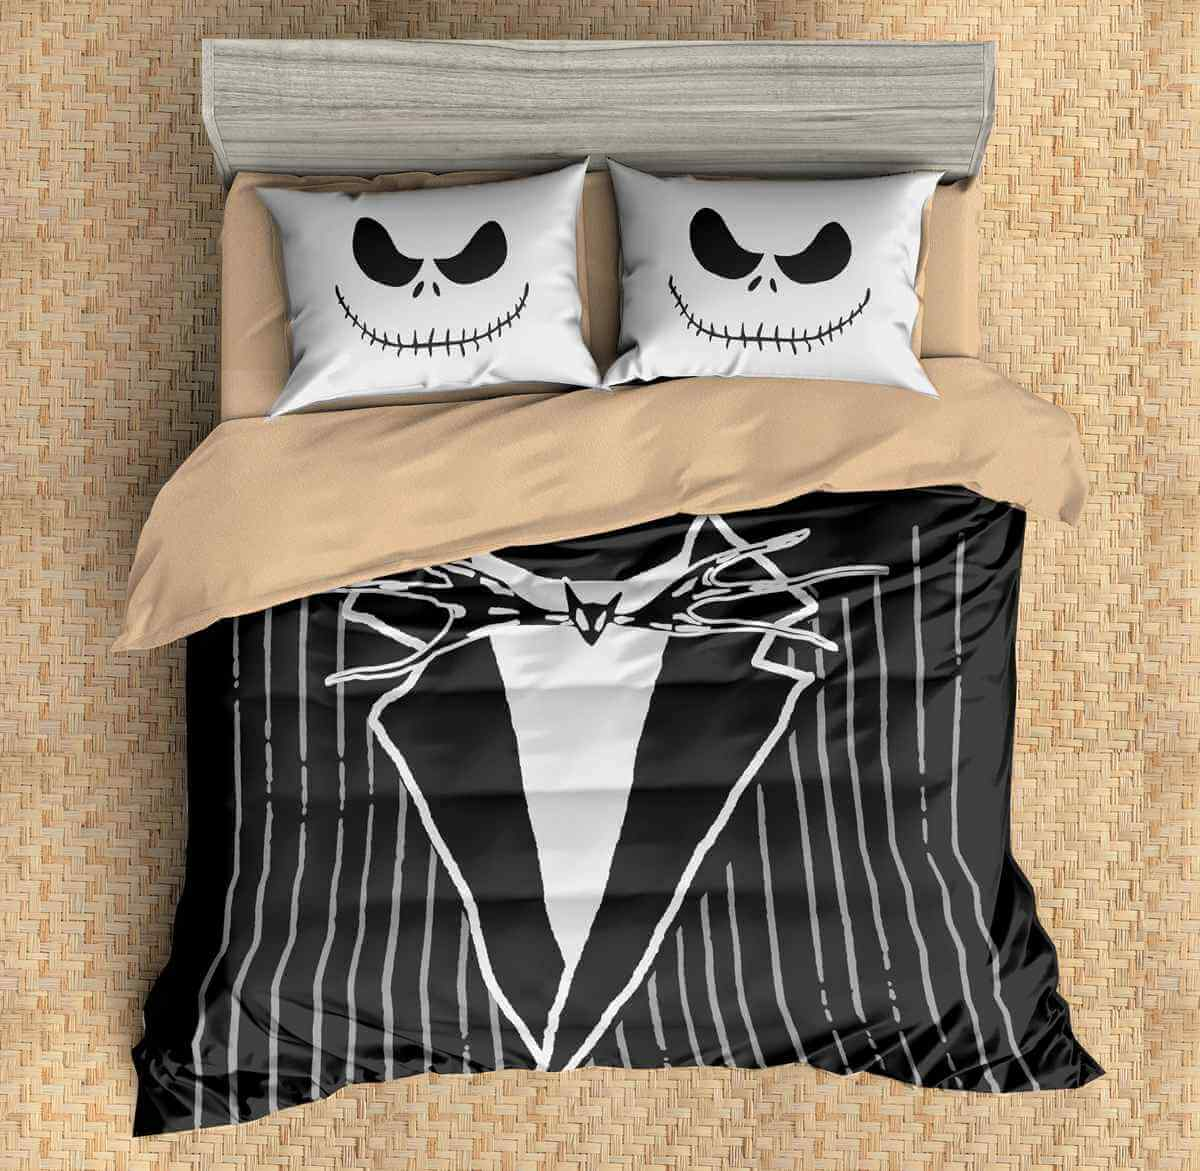 3D Bedding Set The Nightmare Before Christmas Duvet Cover Set 3PCS ...